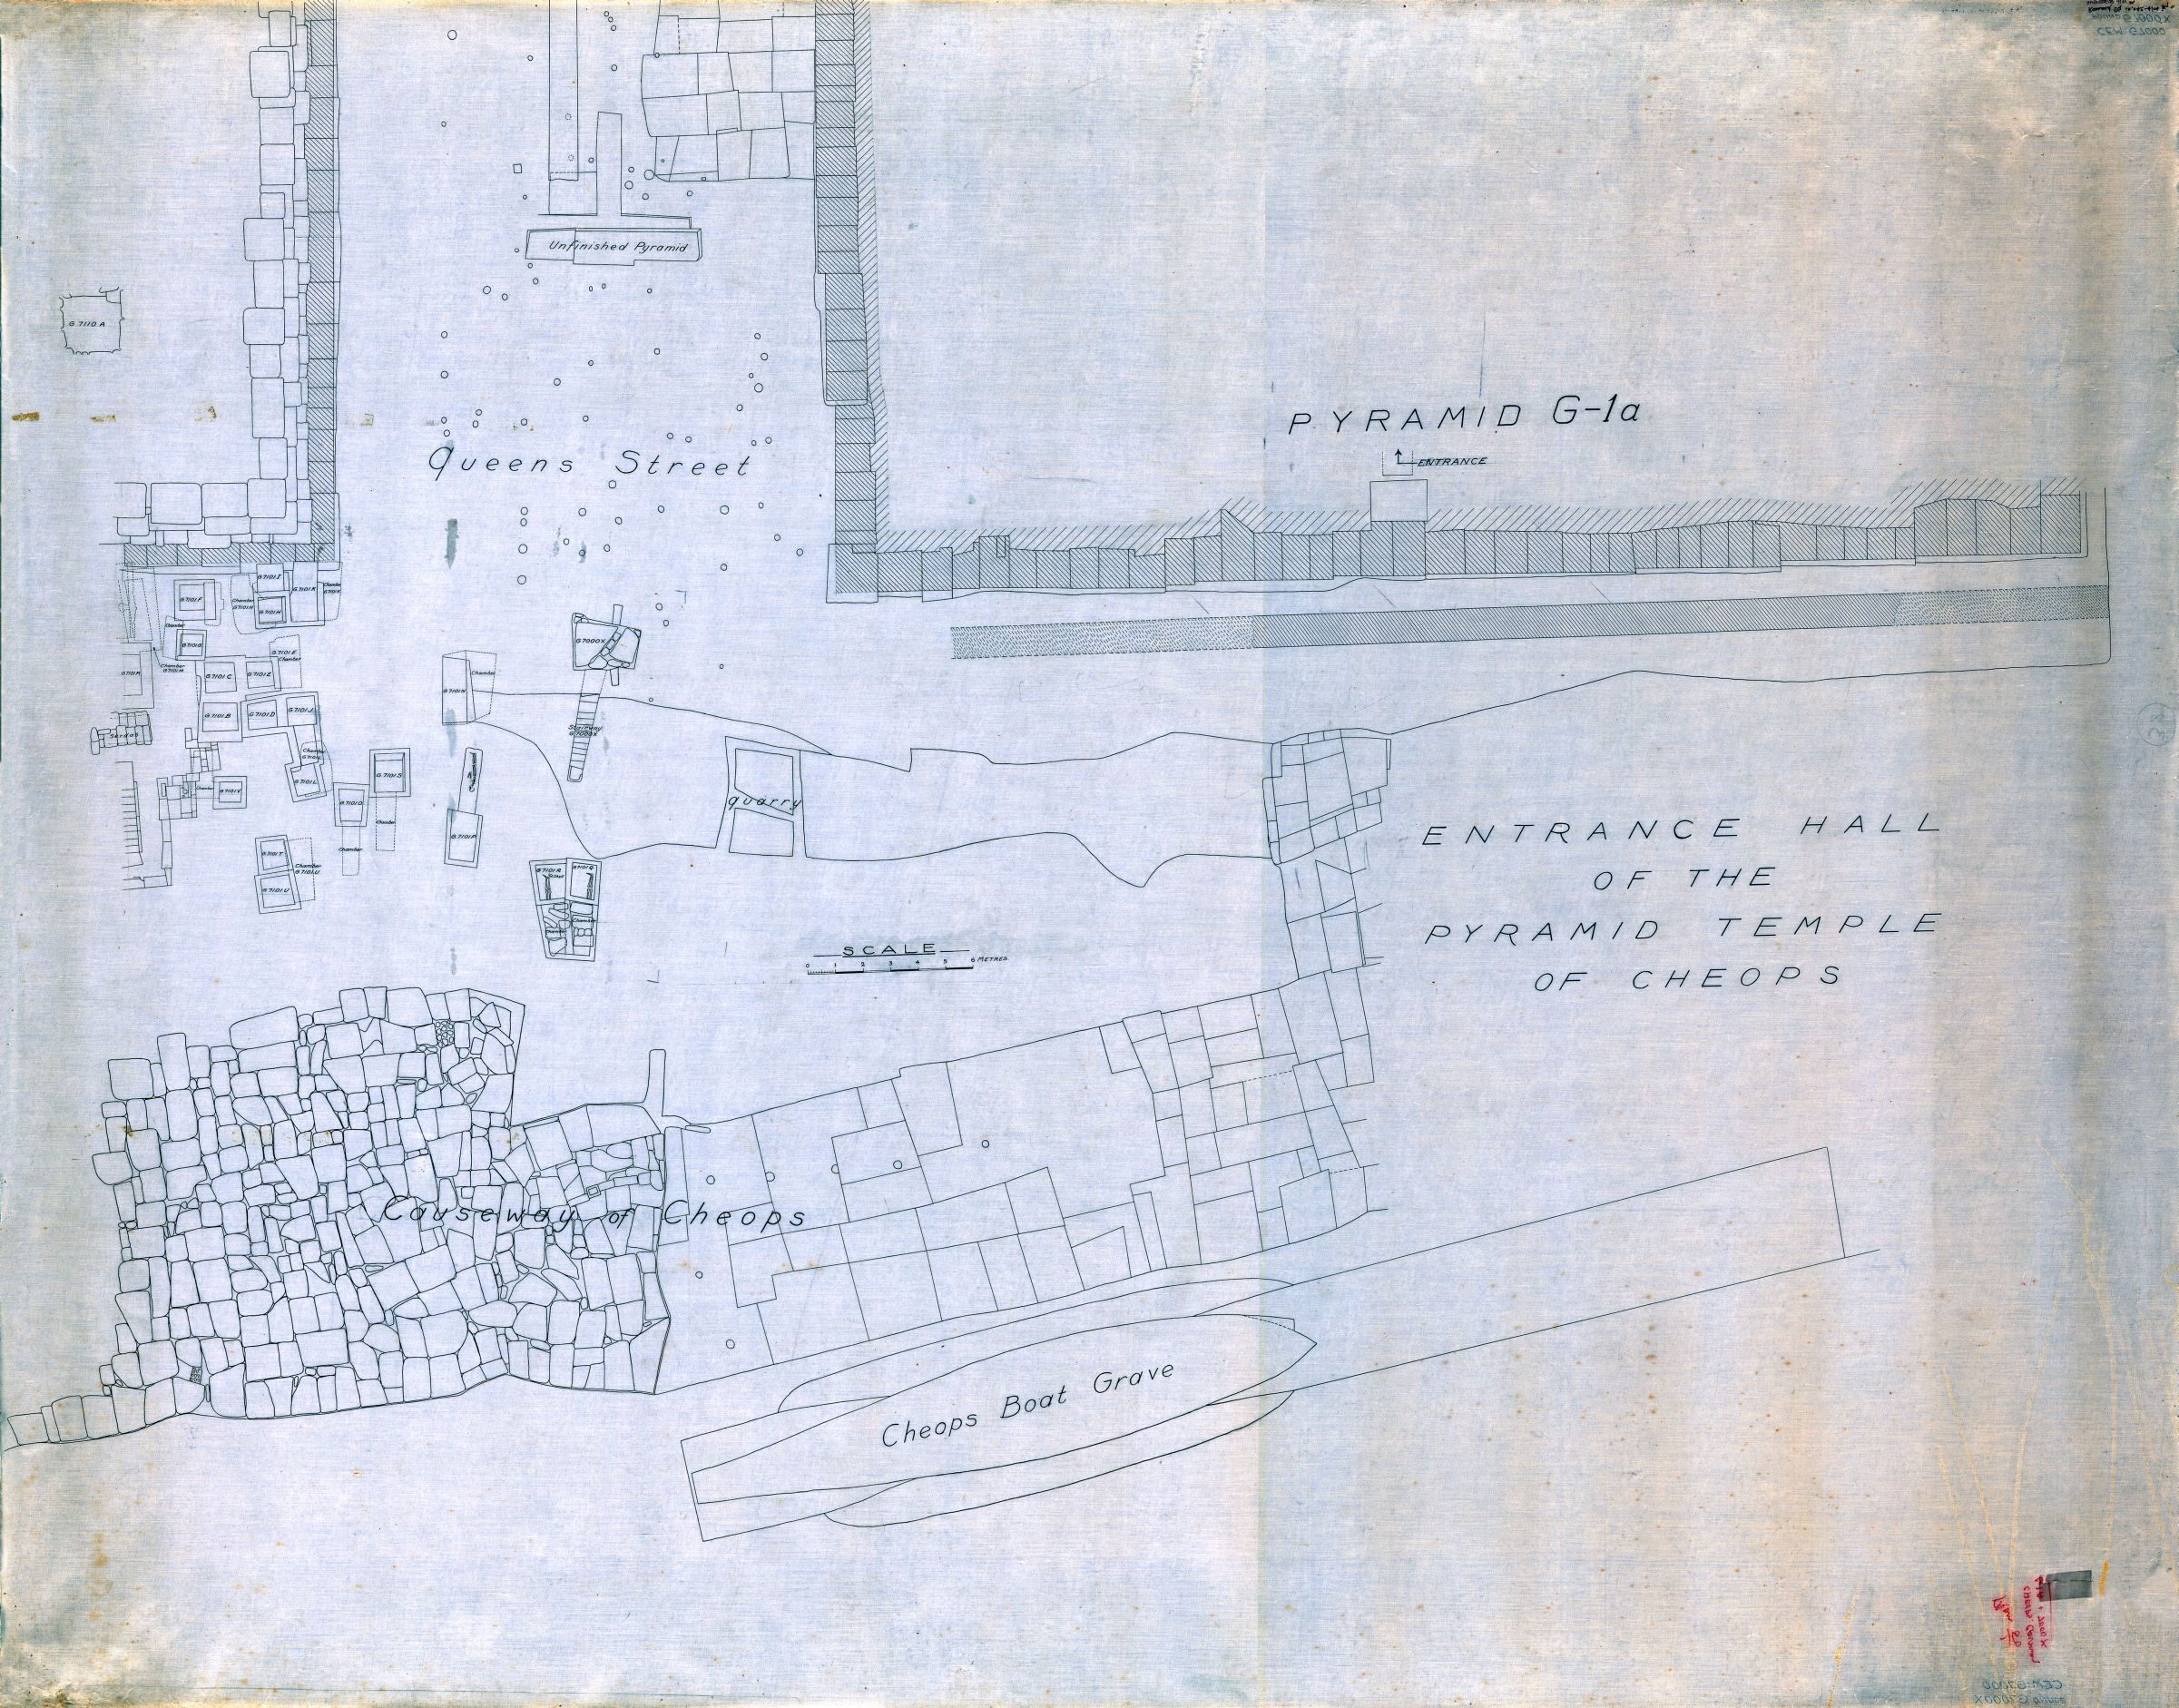 Maps and plans: Plan of cemetery G 7000: near G 7000 X